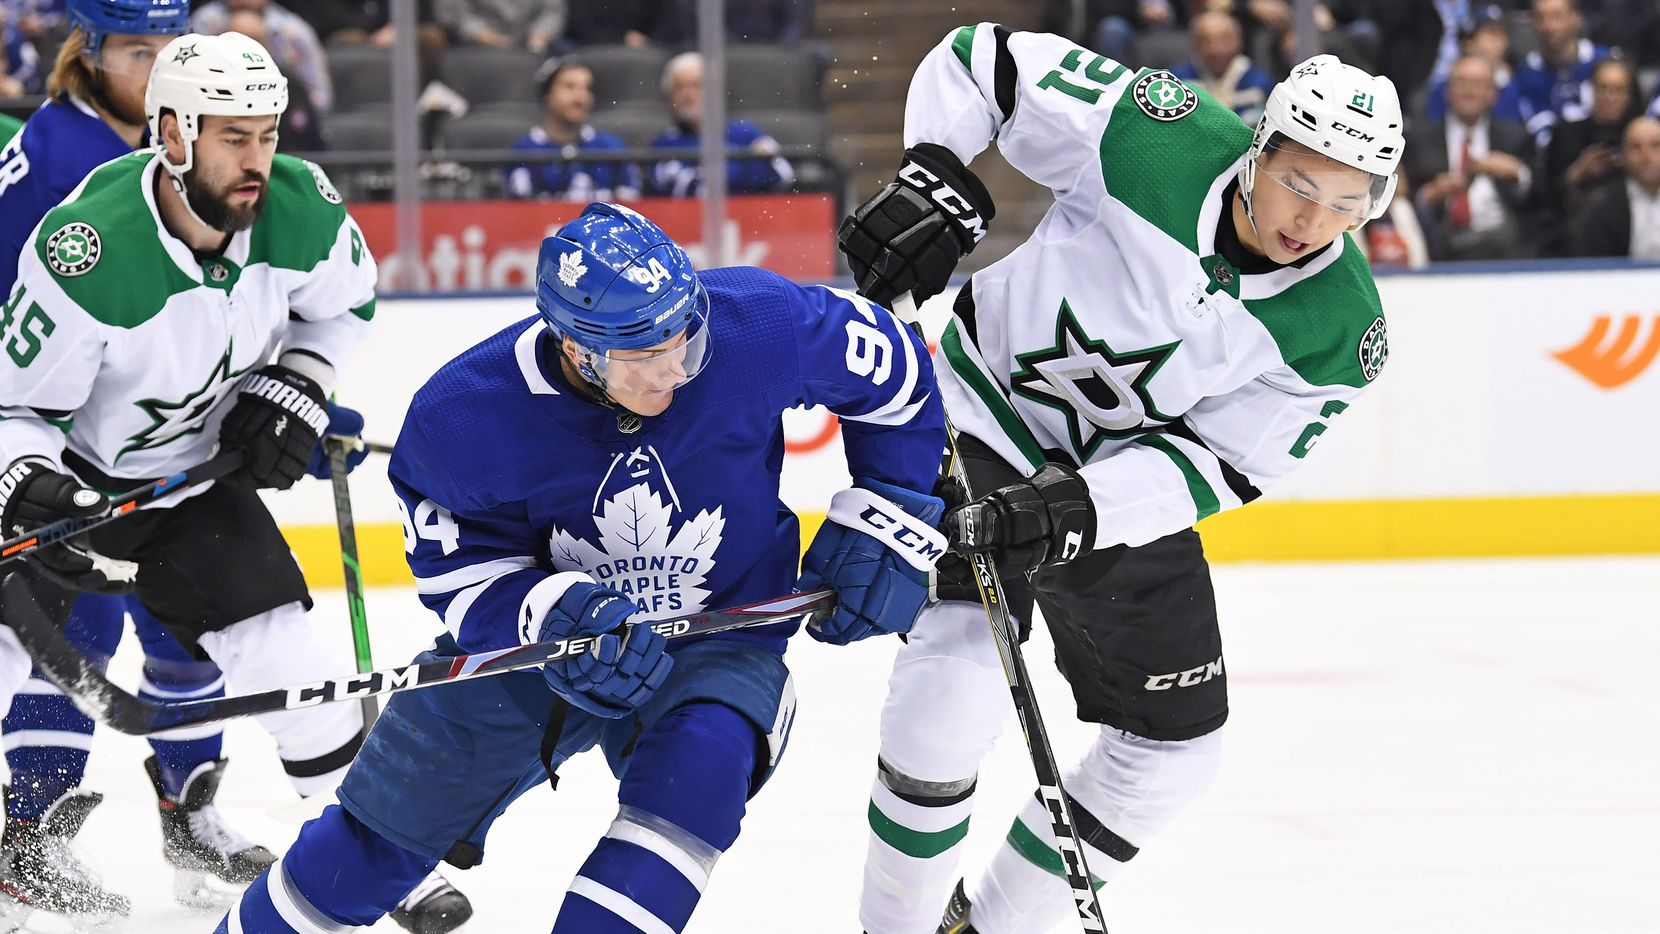 Dallas Stars Left Wing Jason Robertson (21, right) is defended by Toronto Maple Leafs Defenceman Tyson Barrie (94) in the first period during the regular season NHL game between the Dallas Stars and Toronto Maple Leafs on February 13, 2020 at Scotiabank Arena in Toronto, ON.